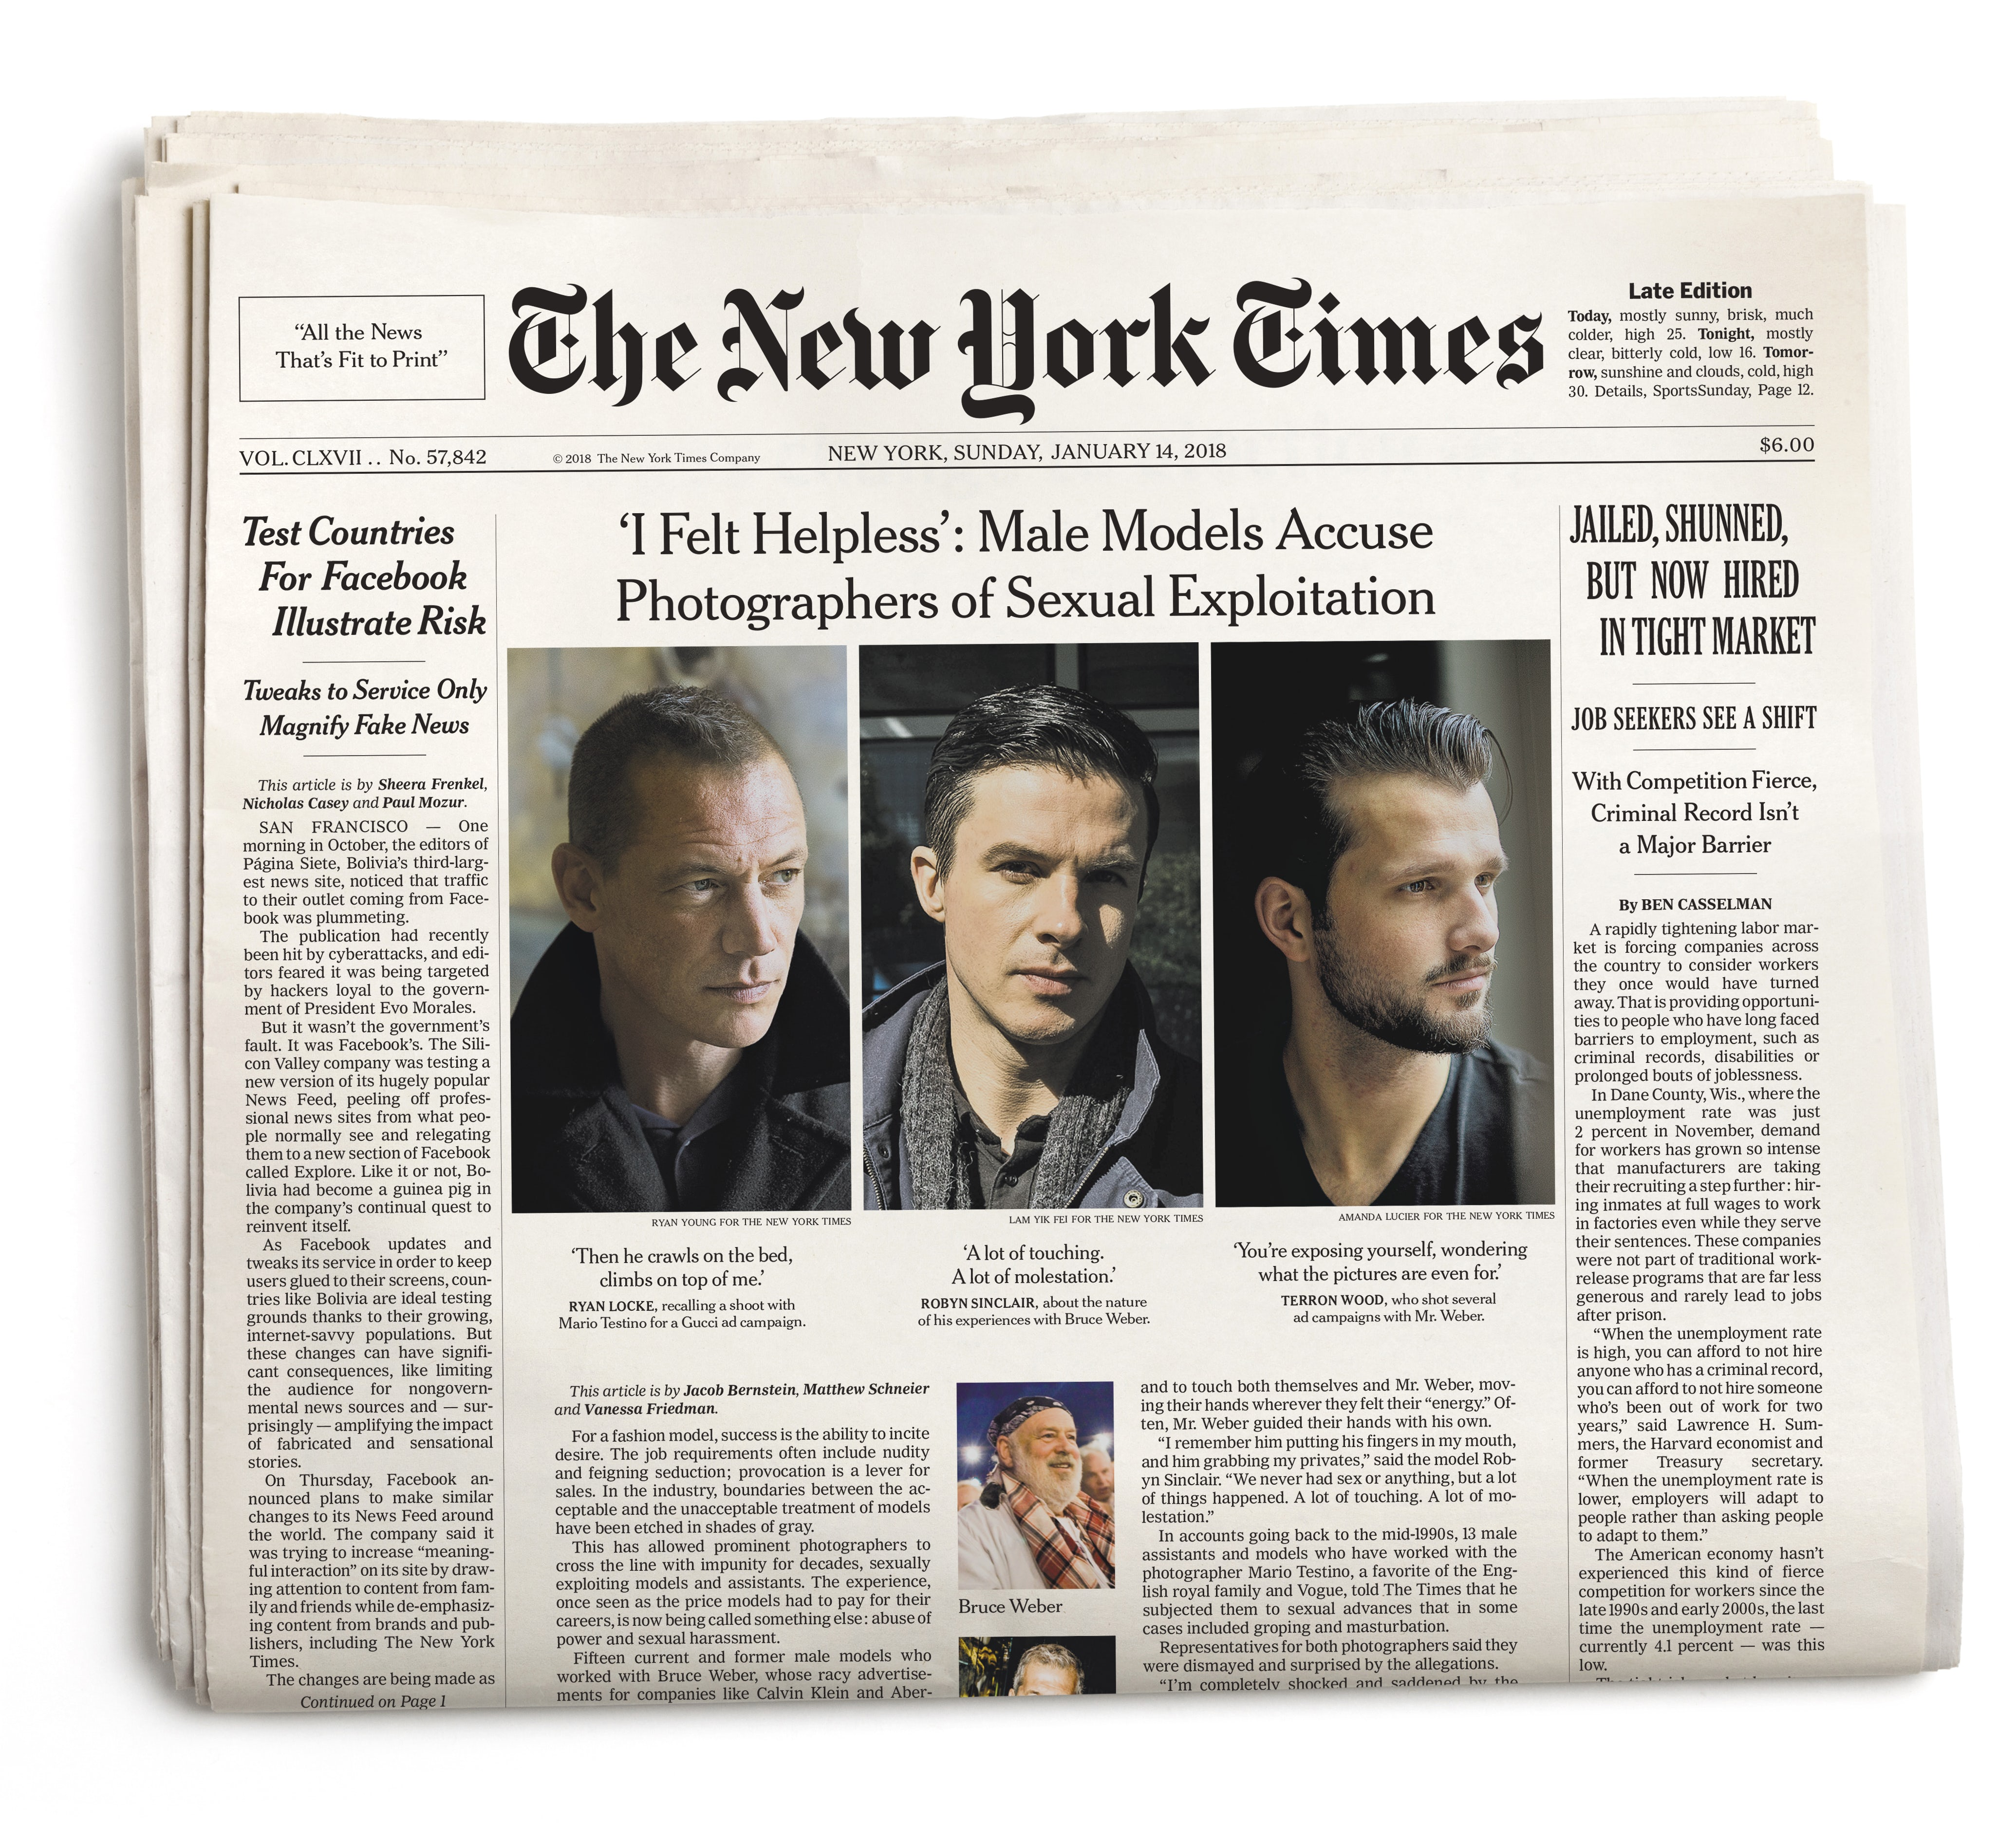 The front page of The New York Times' Sunday edition